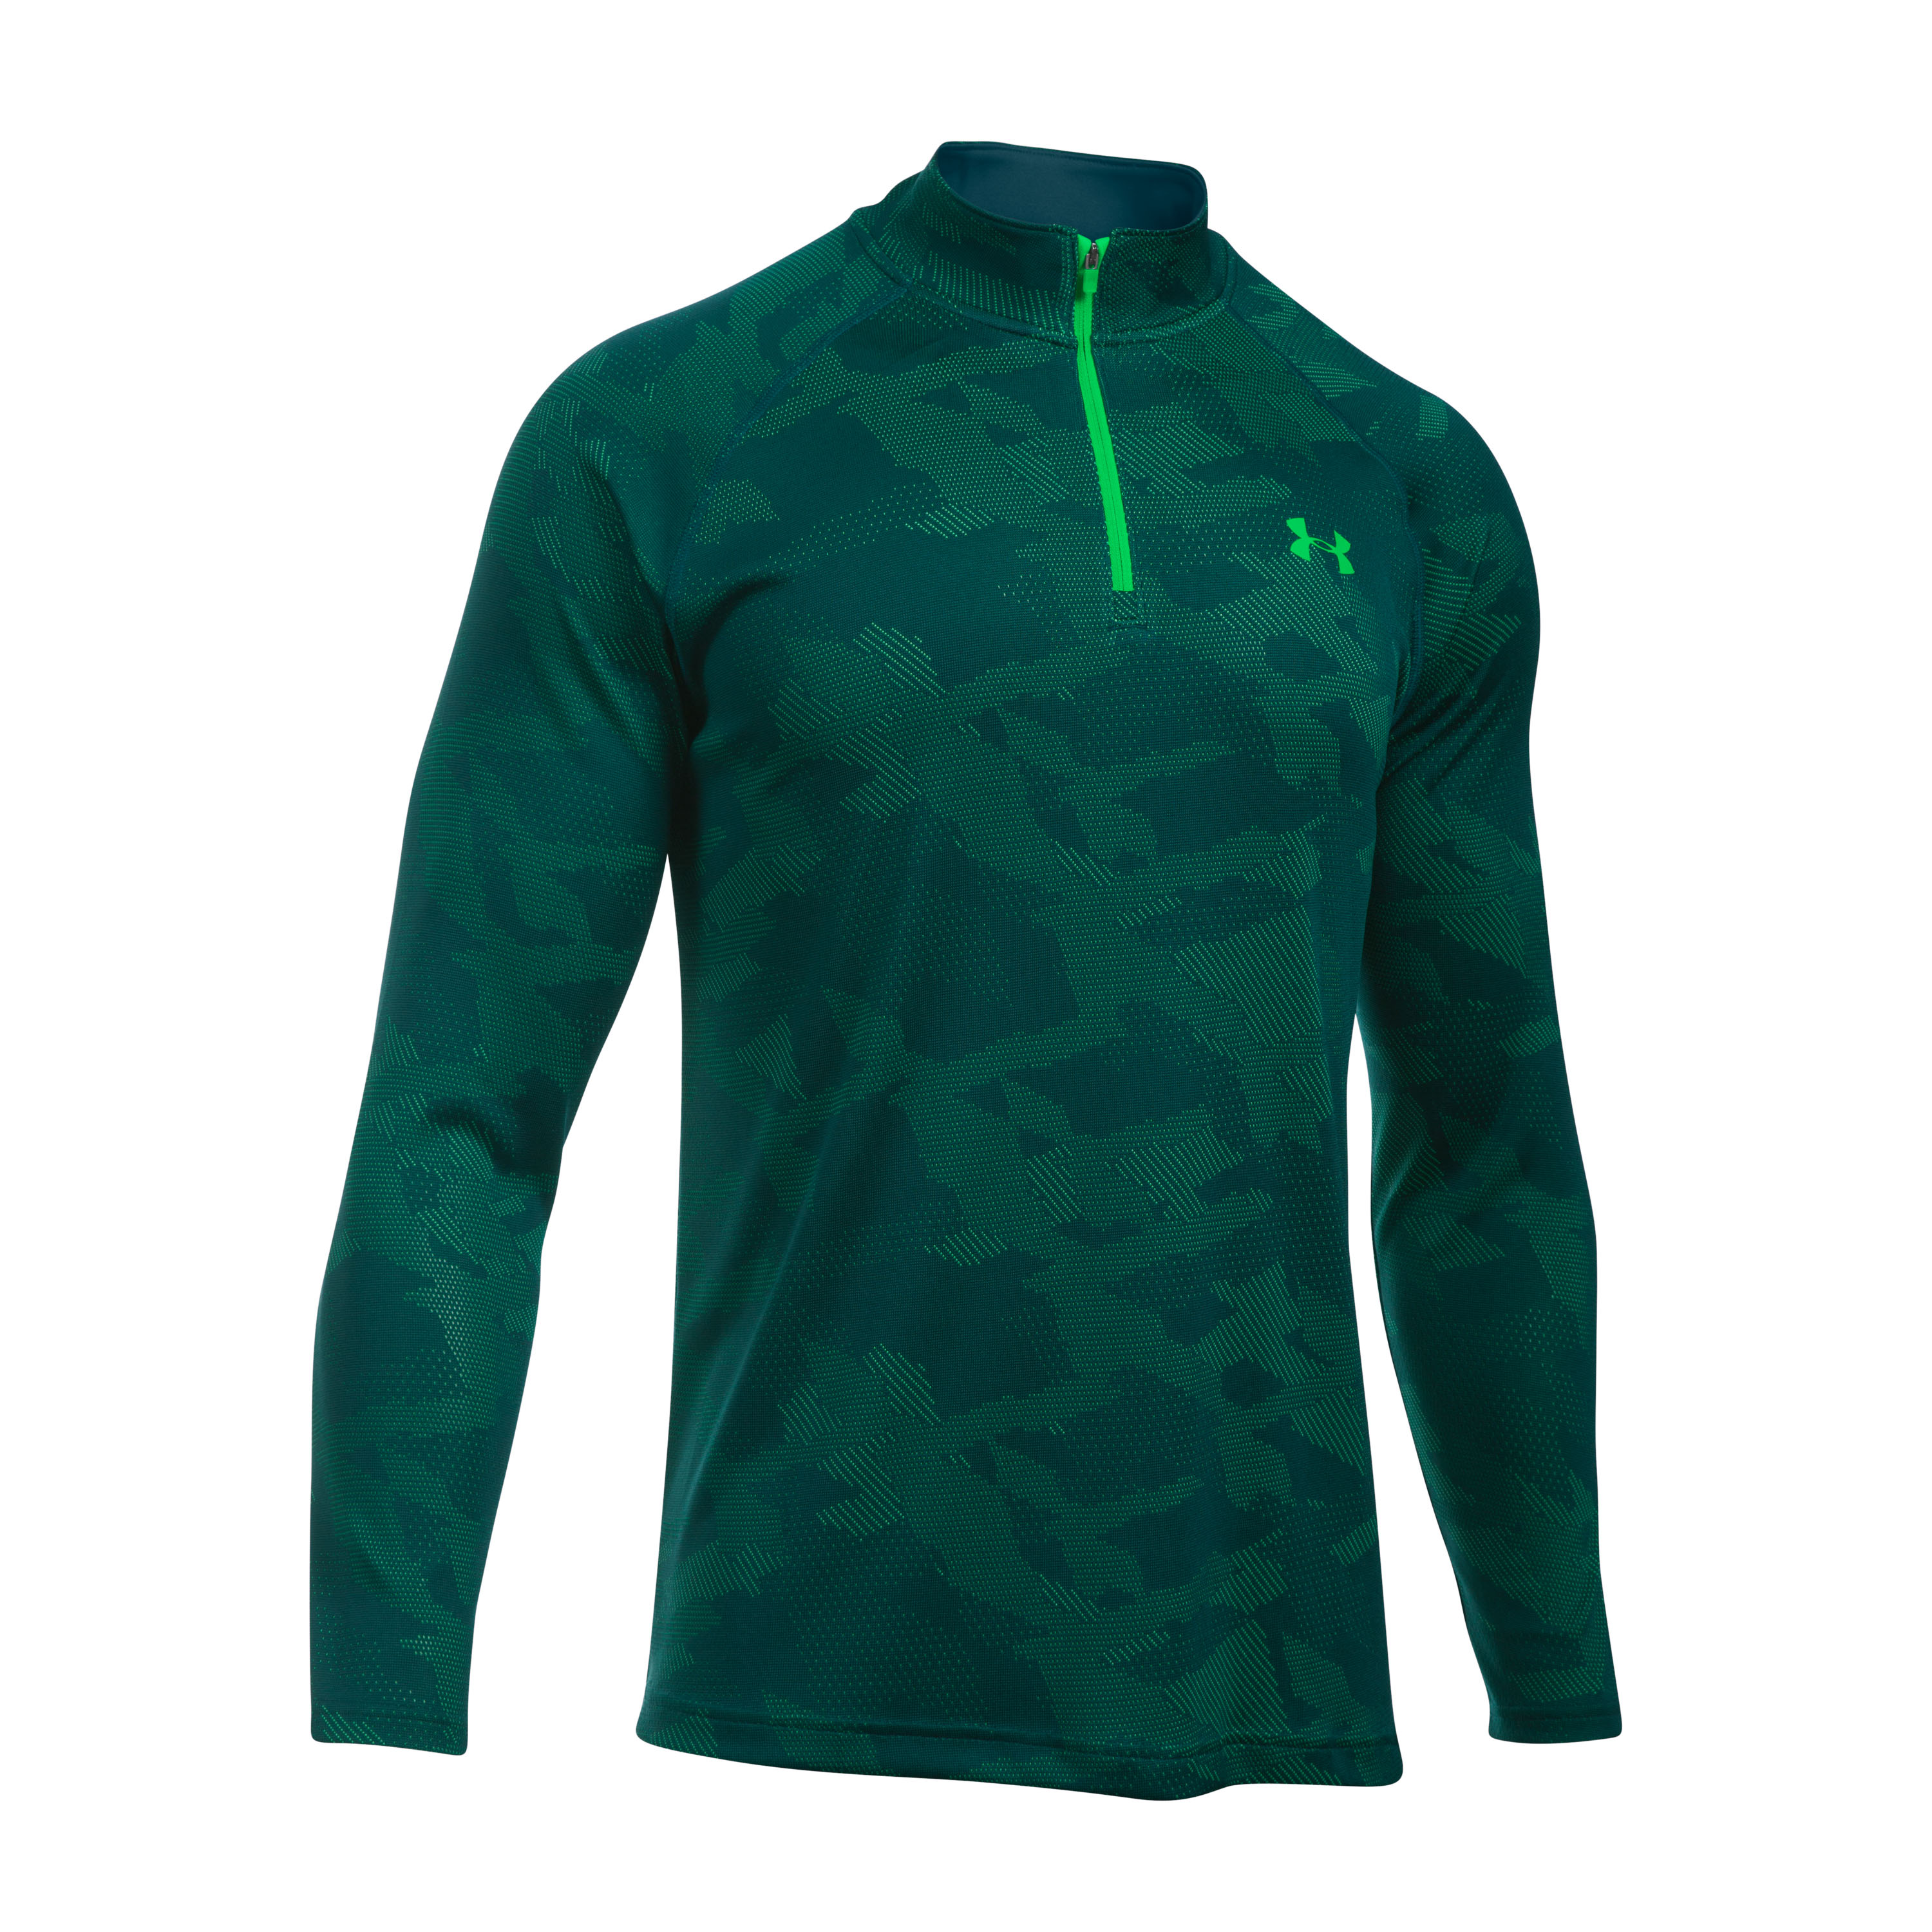 Under Armour Langarmshirt Tech Jacquard 1/4 Zip grün